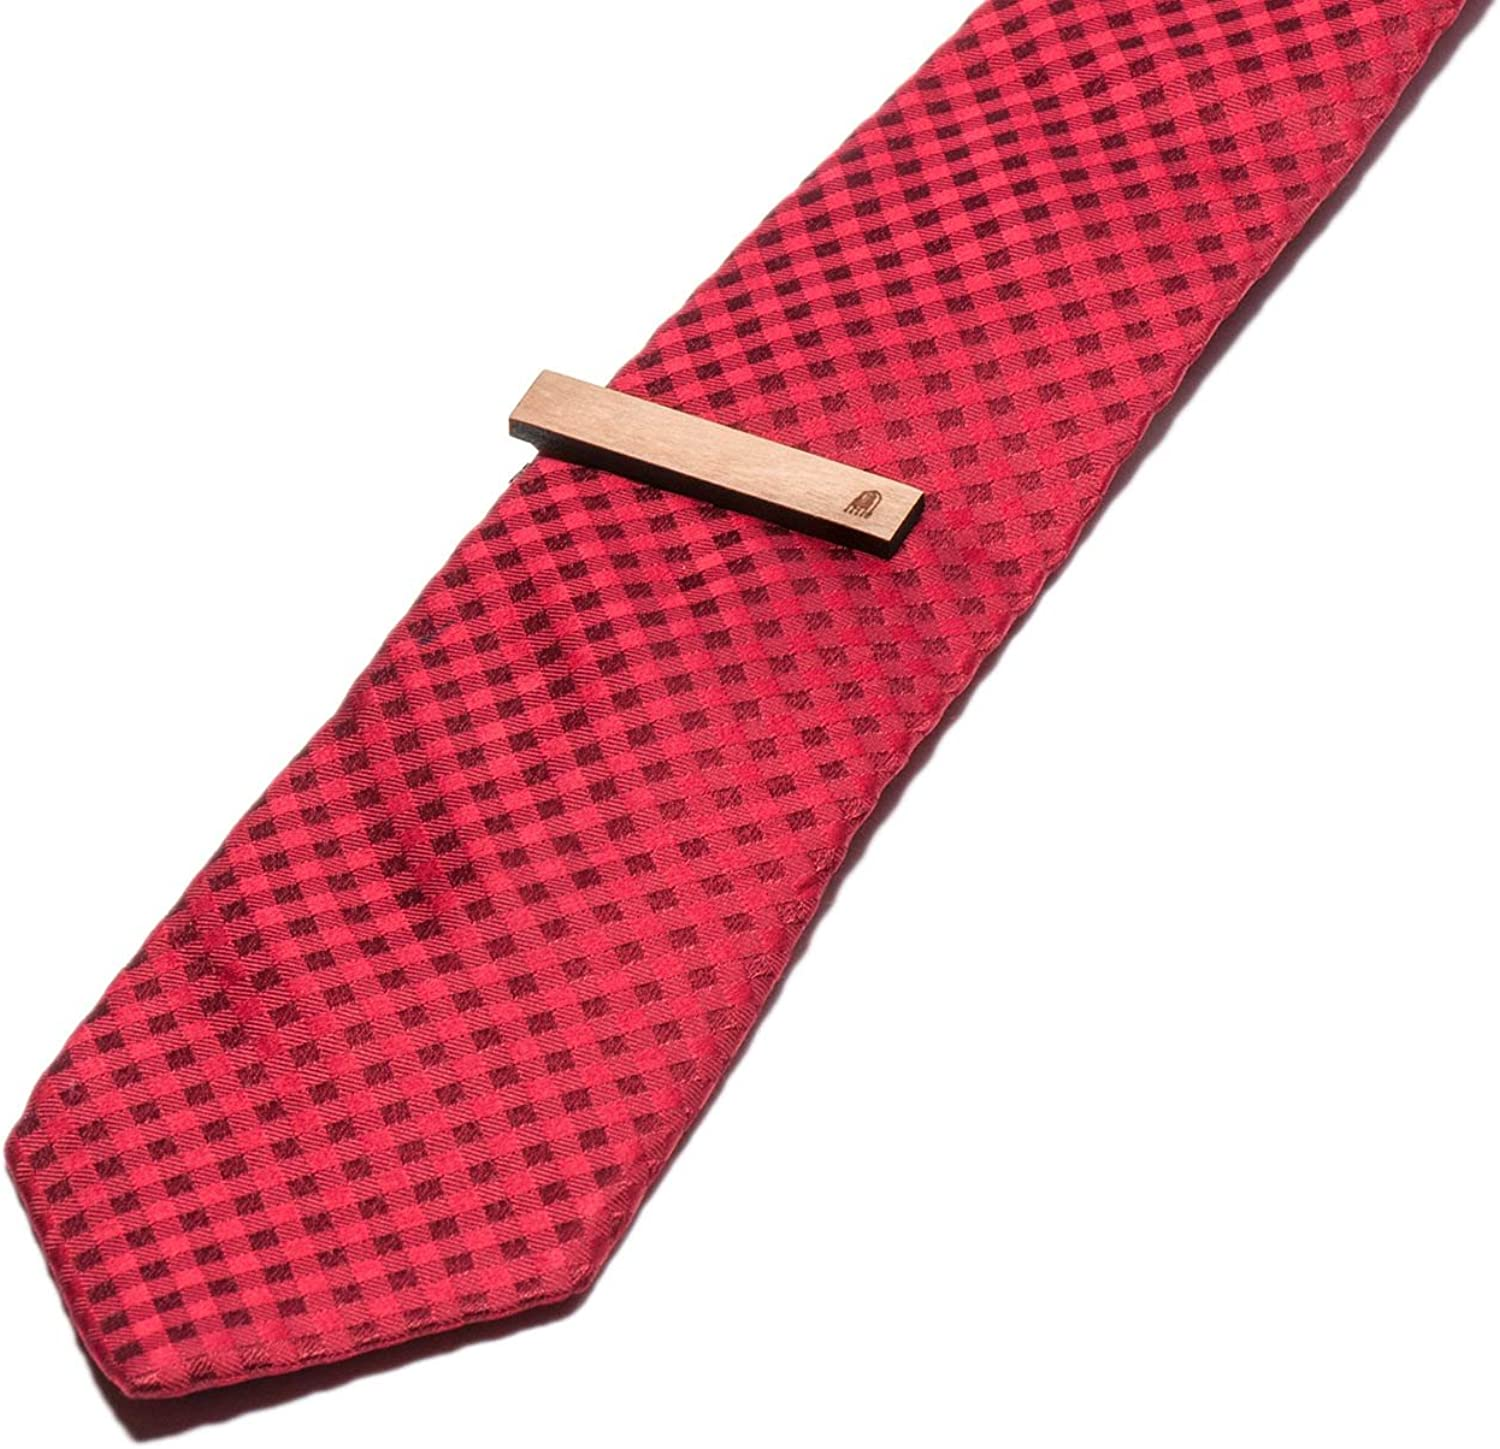 Wooden Accessories Company Wooden Tie Clips with Laser Engraved Fermentation Tank Design Cherry Wood Tie Bar Engraved in The USA